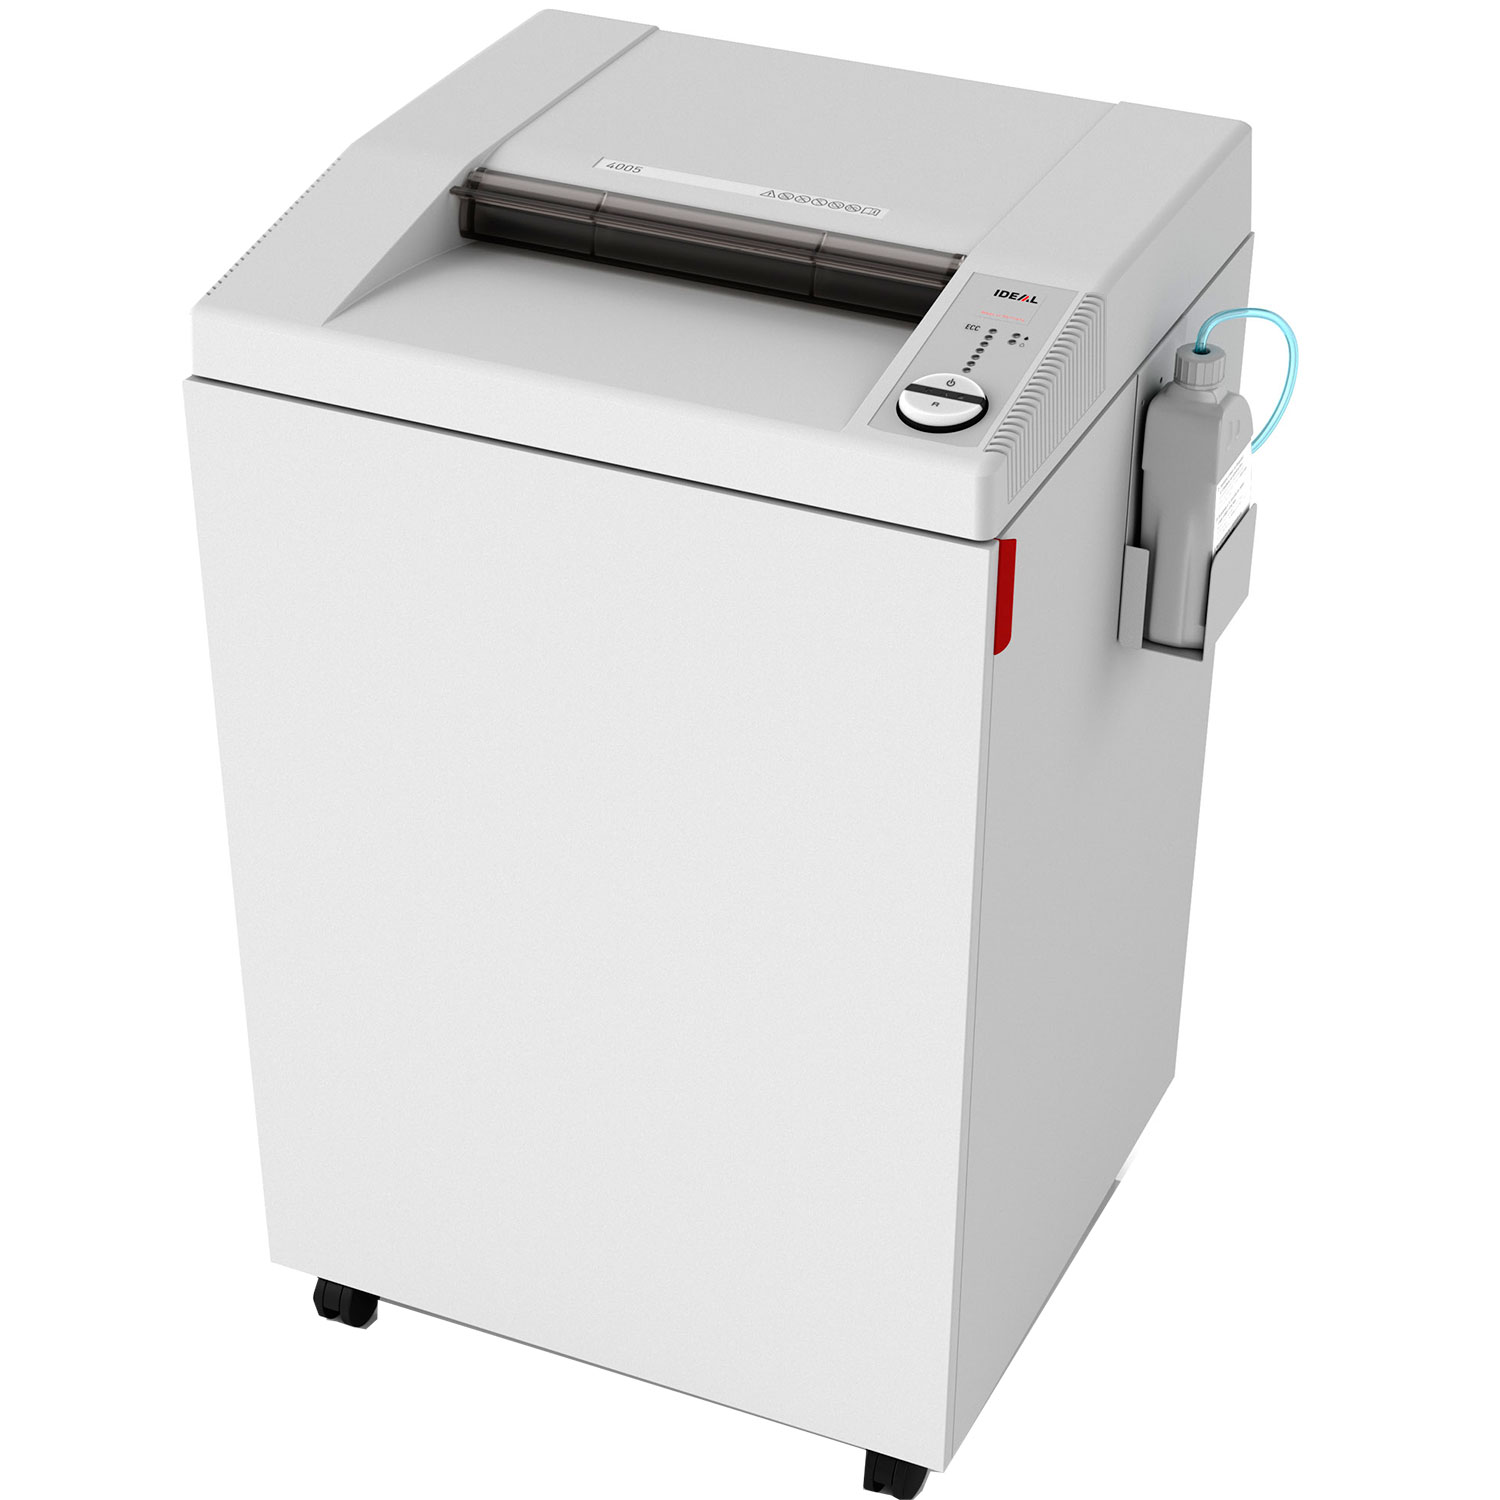 IDEAL 4005 Micro-Cut 0.8 x 12mm Paper Shredder